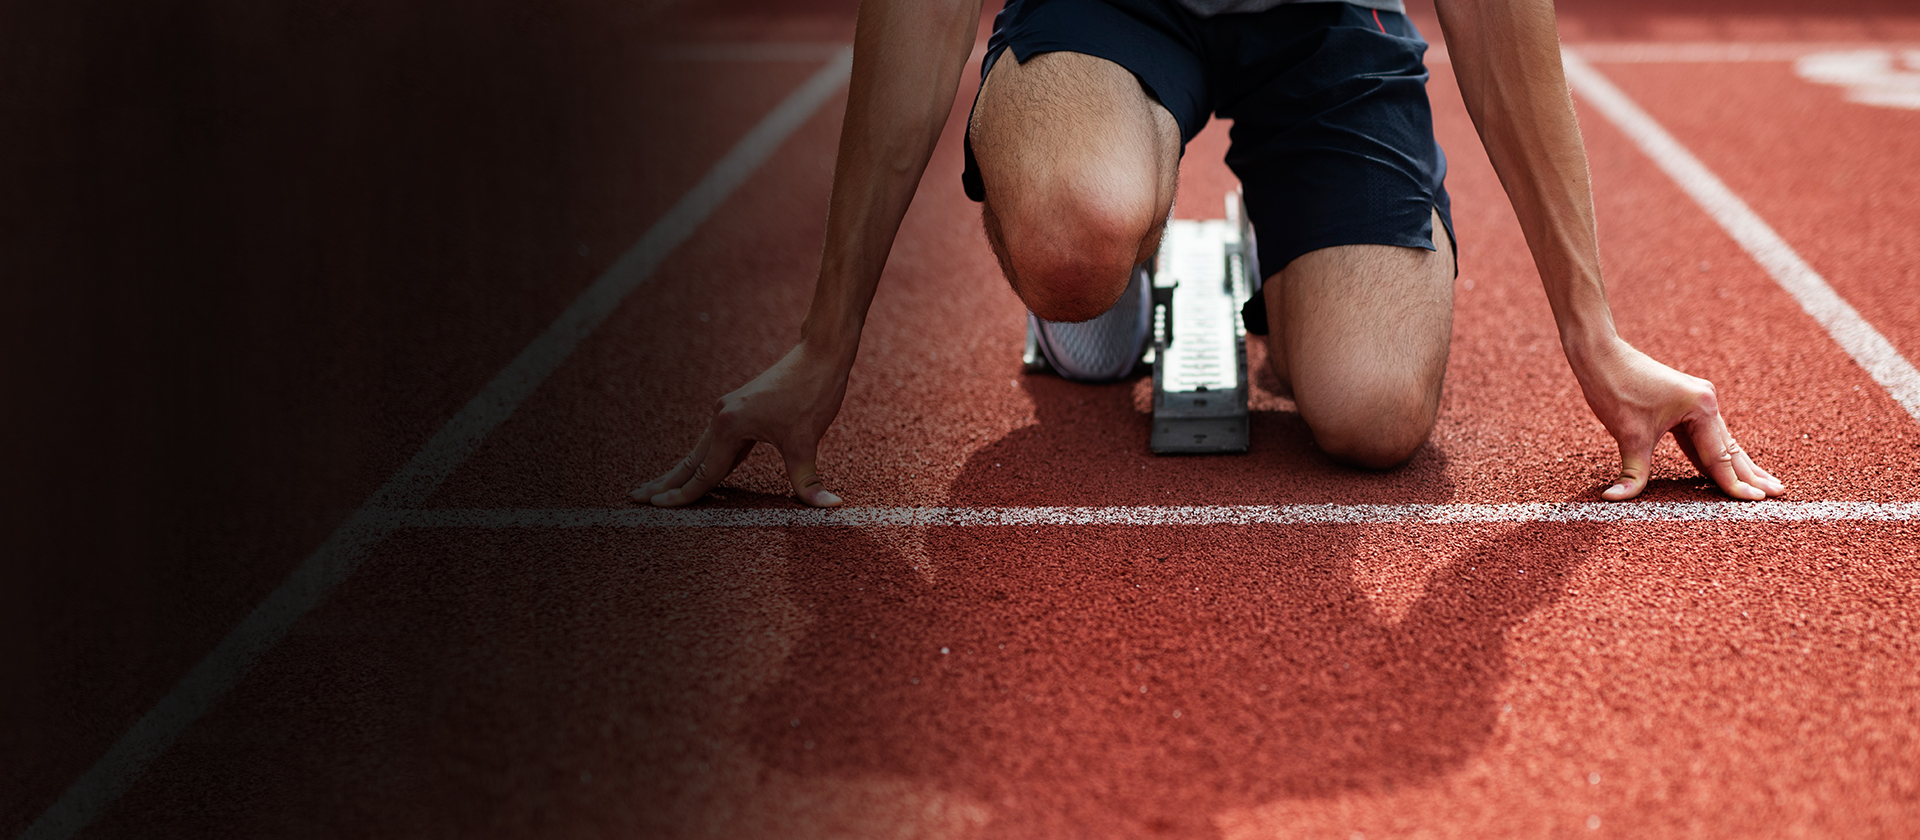 Chlorinated paraffins are used in plastic running tracks